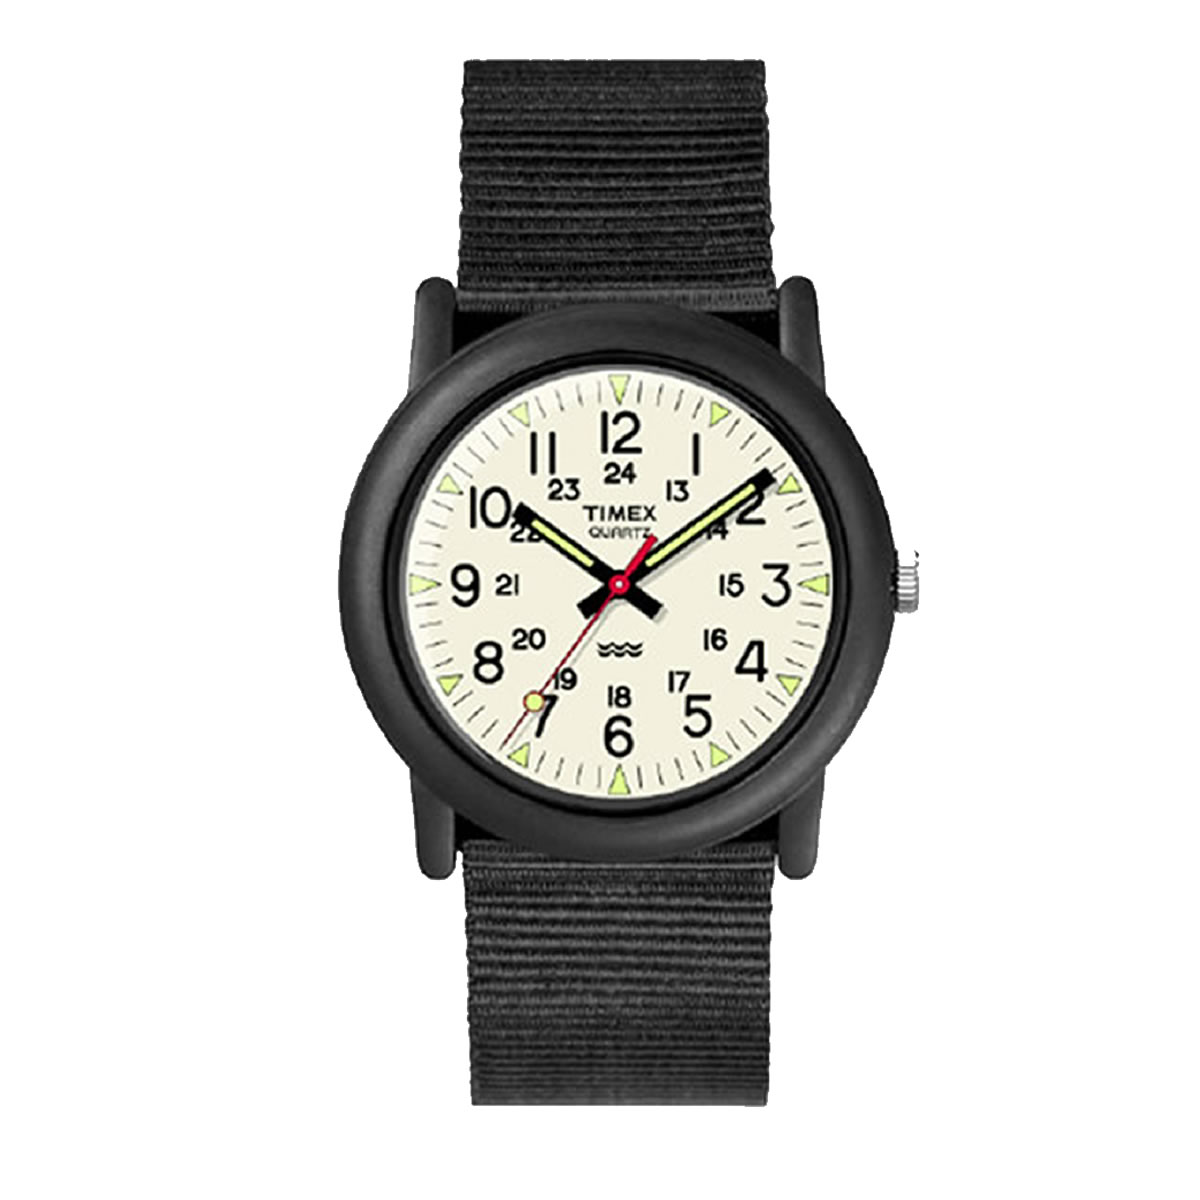 TIMEX Camper  JAPAN Limited ブラック 34mm TW2P59700 機能詳細